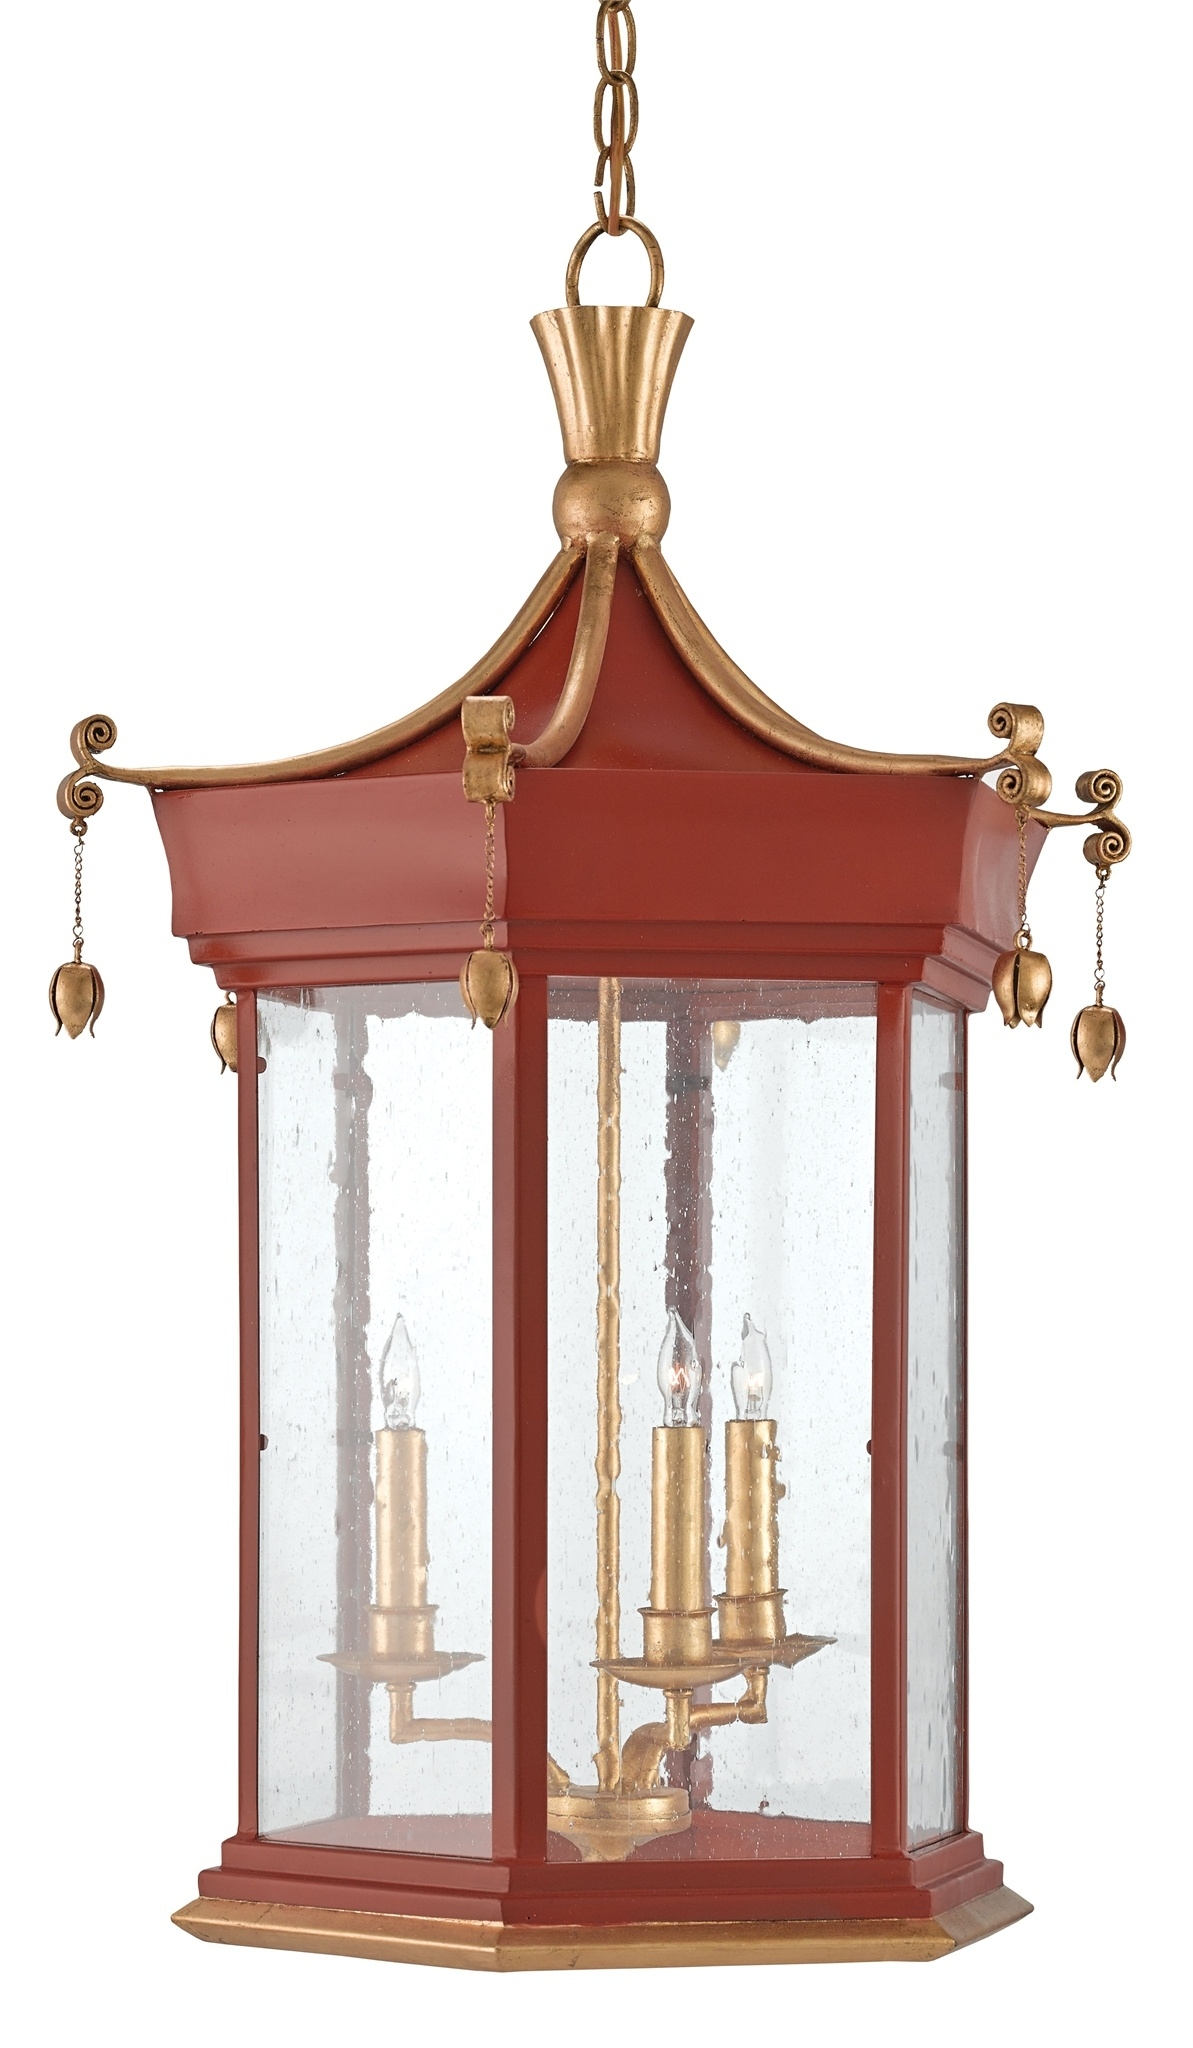 Chinoiserie Pagoda Lantern Chandelier Mecox Gardens With Chinoiserie Chandeliers (Image 4 of 25)